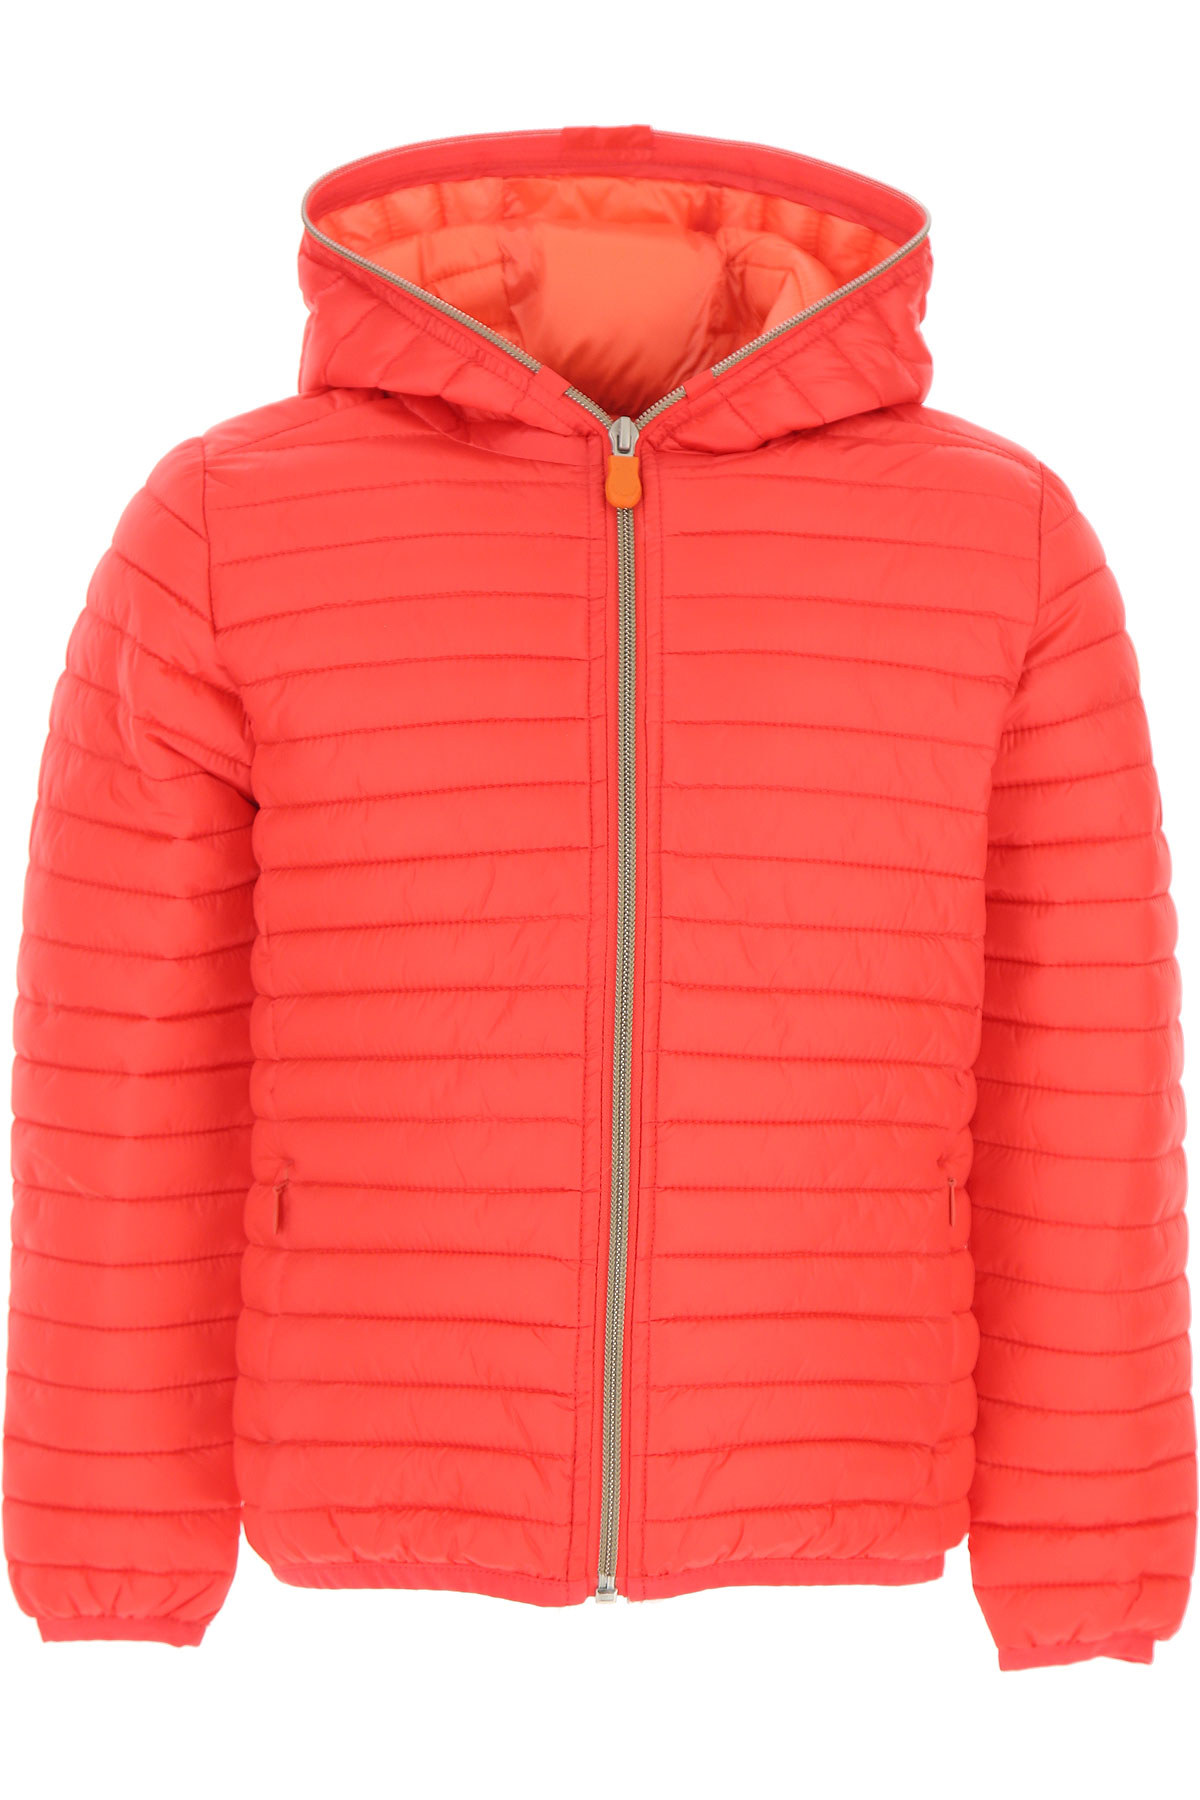 Save the Duck Girls Down Jacket for Kids, Puffer Ski Jacket On Sale, Red, polyamide, 2019, 14Y 6Y